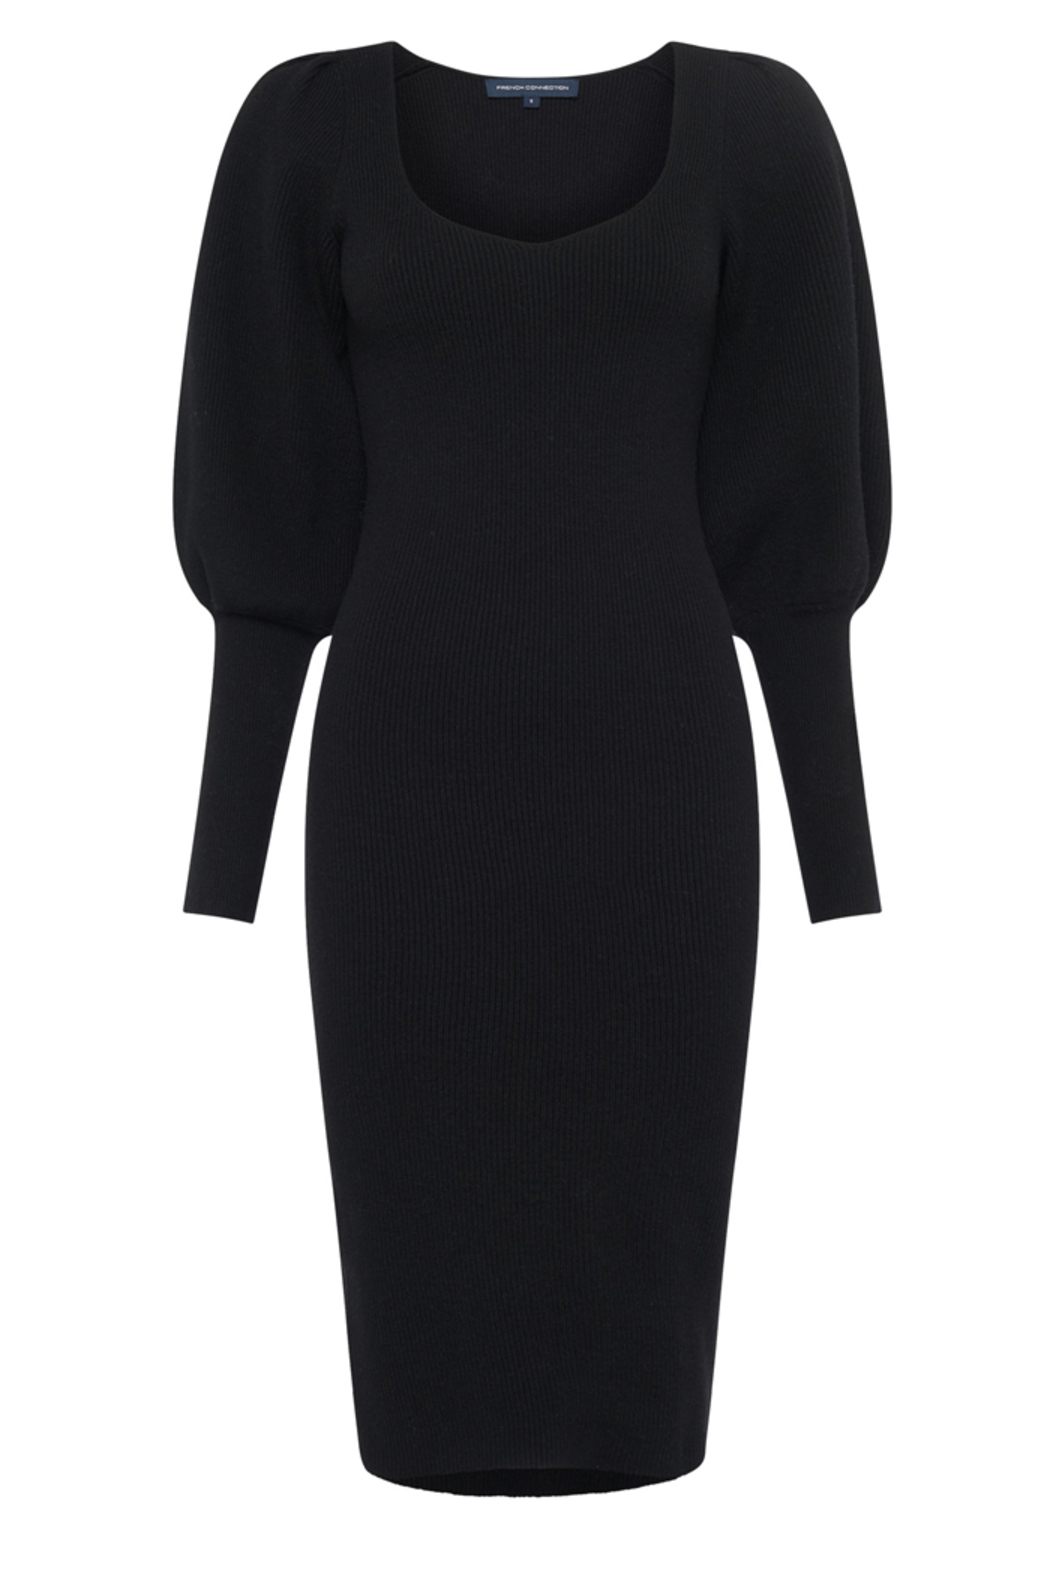 French Connection LONG KNIT BALLOON SLEEVE DRESS - Back Cropped Image